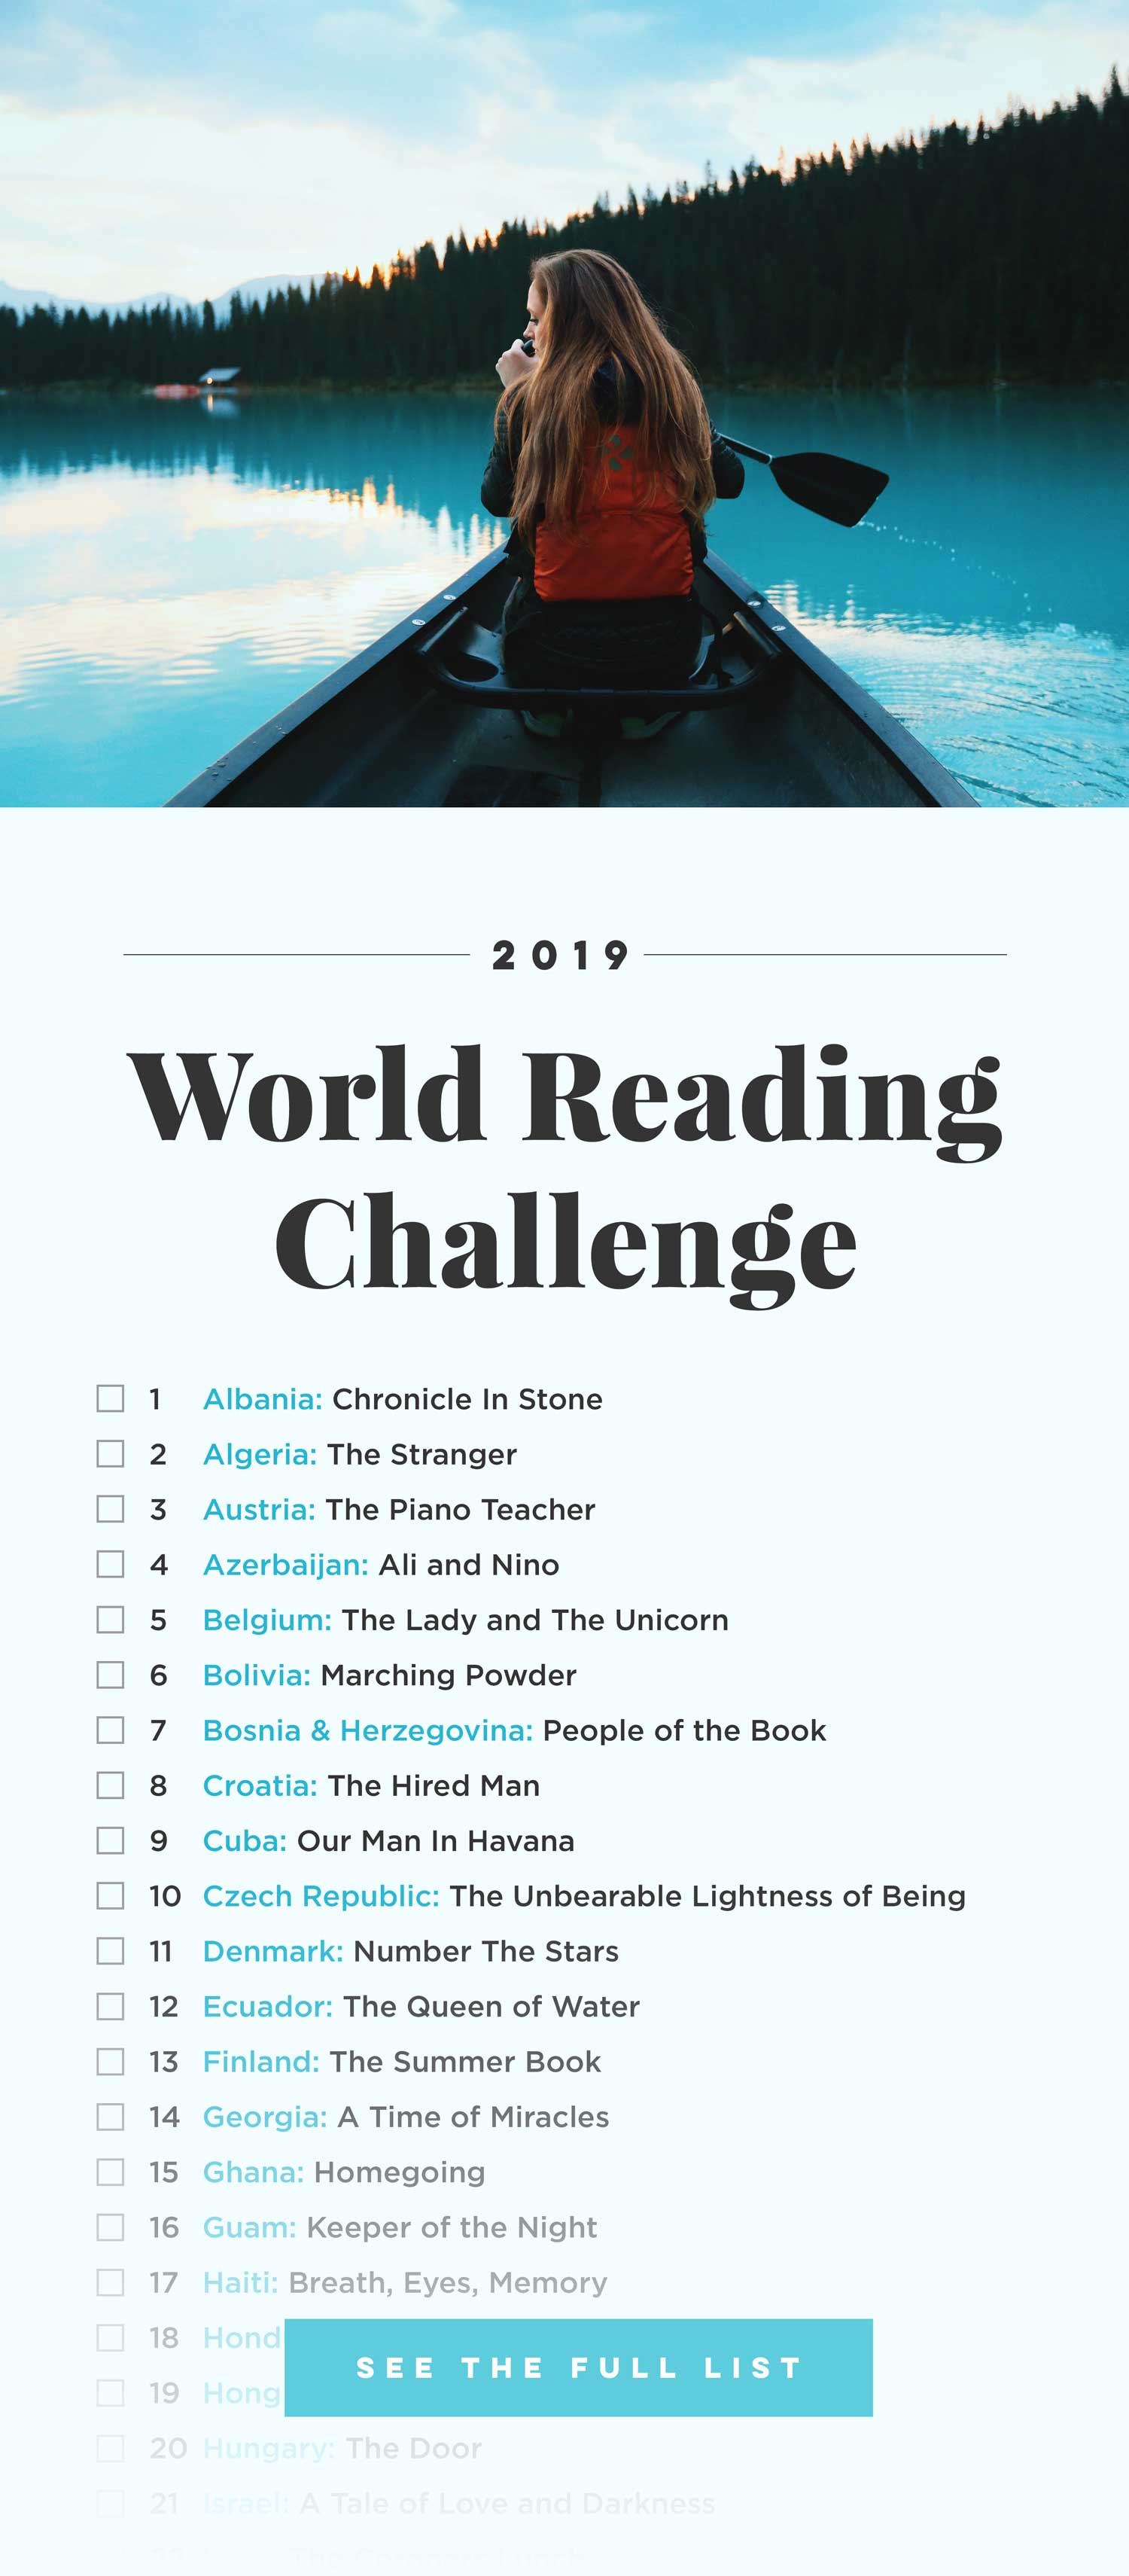 World Reading Challenge, Books Around The Globe - For more books visit www.taleway.com to find books set around the world. reading challenge, 2019 reading challenge, world reading challenge, book challenge, 52 books, 52 weeks, new years resolution, books you should read, books from around the world, world books, books and travel, travel reads, reading list, books around the world, books to read, books set in different countries